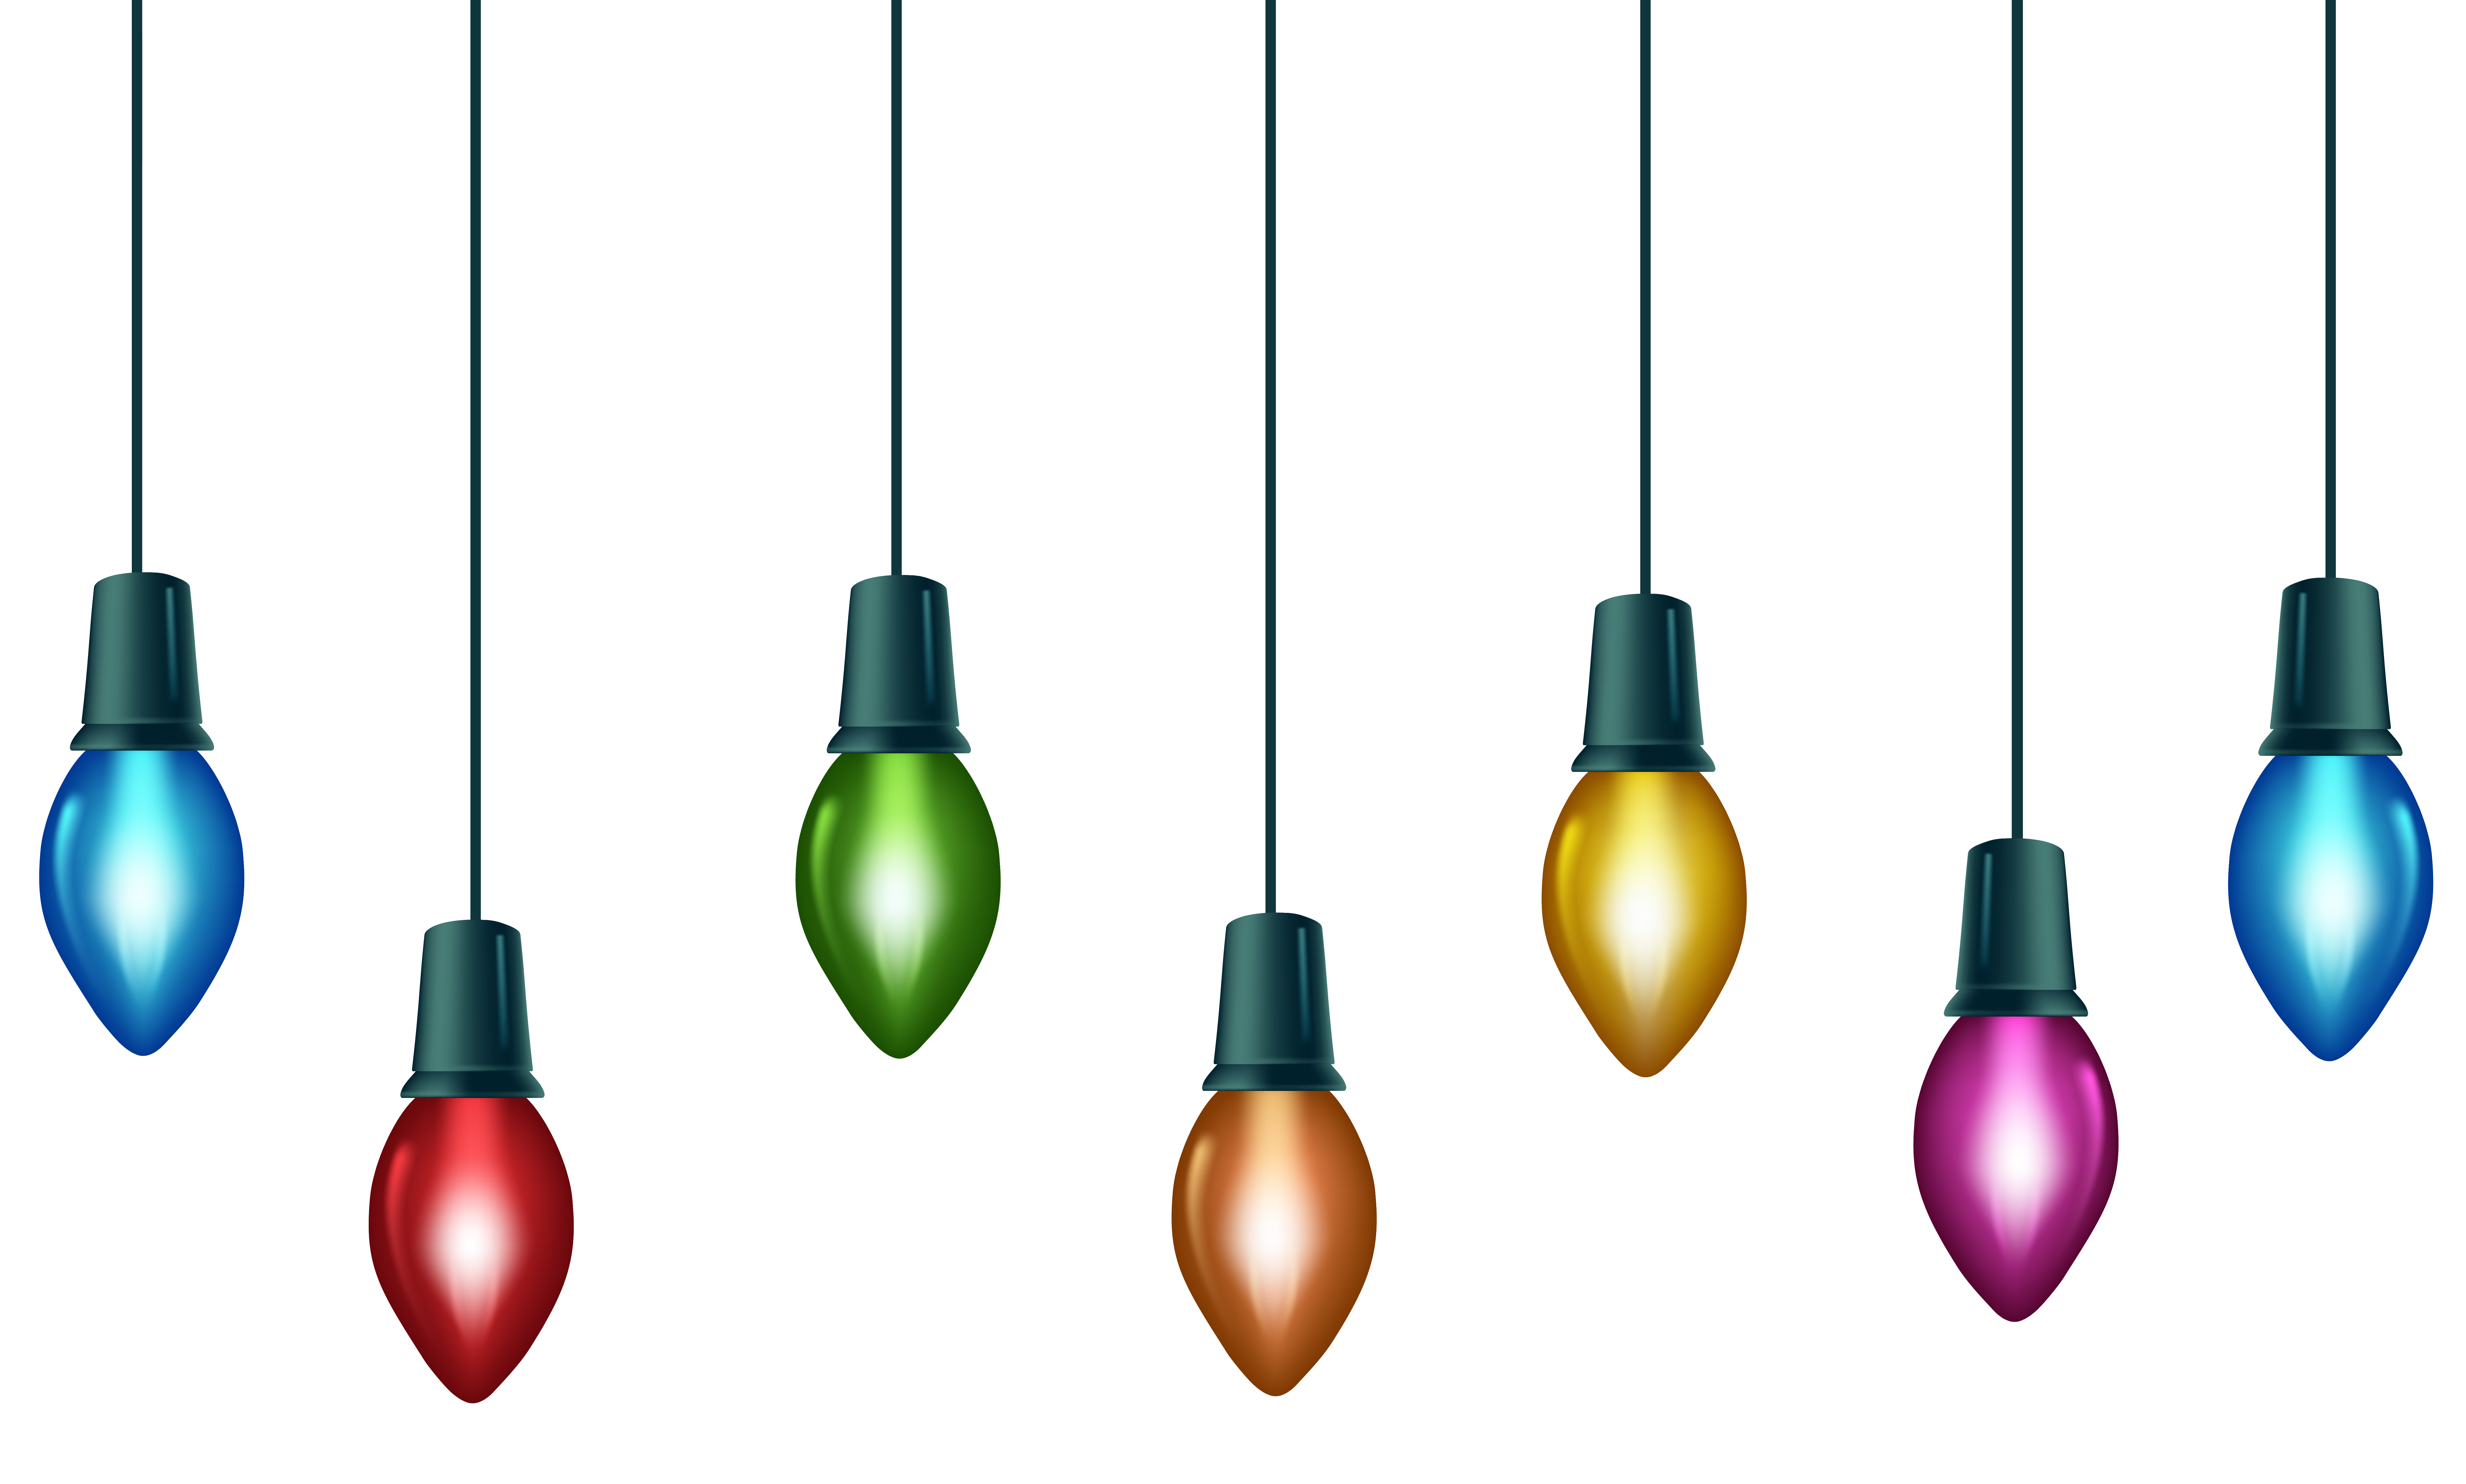 Christmas bulbs clipart transparent library Christmas Colorful Bulbs PNG Clip Art Image | Gallery Yopriceville ... transparent library